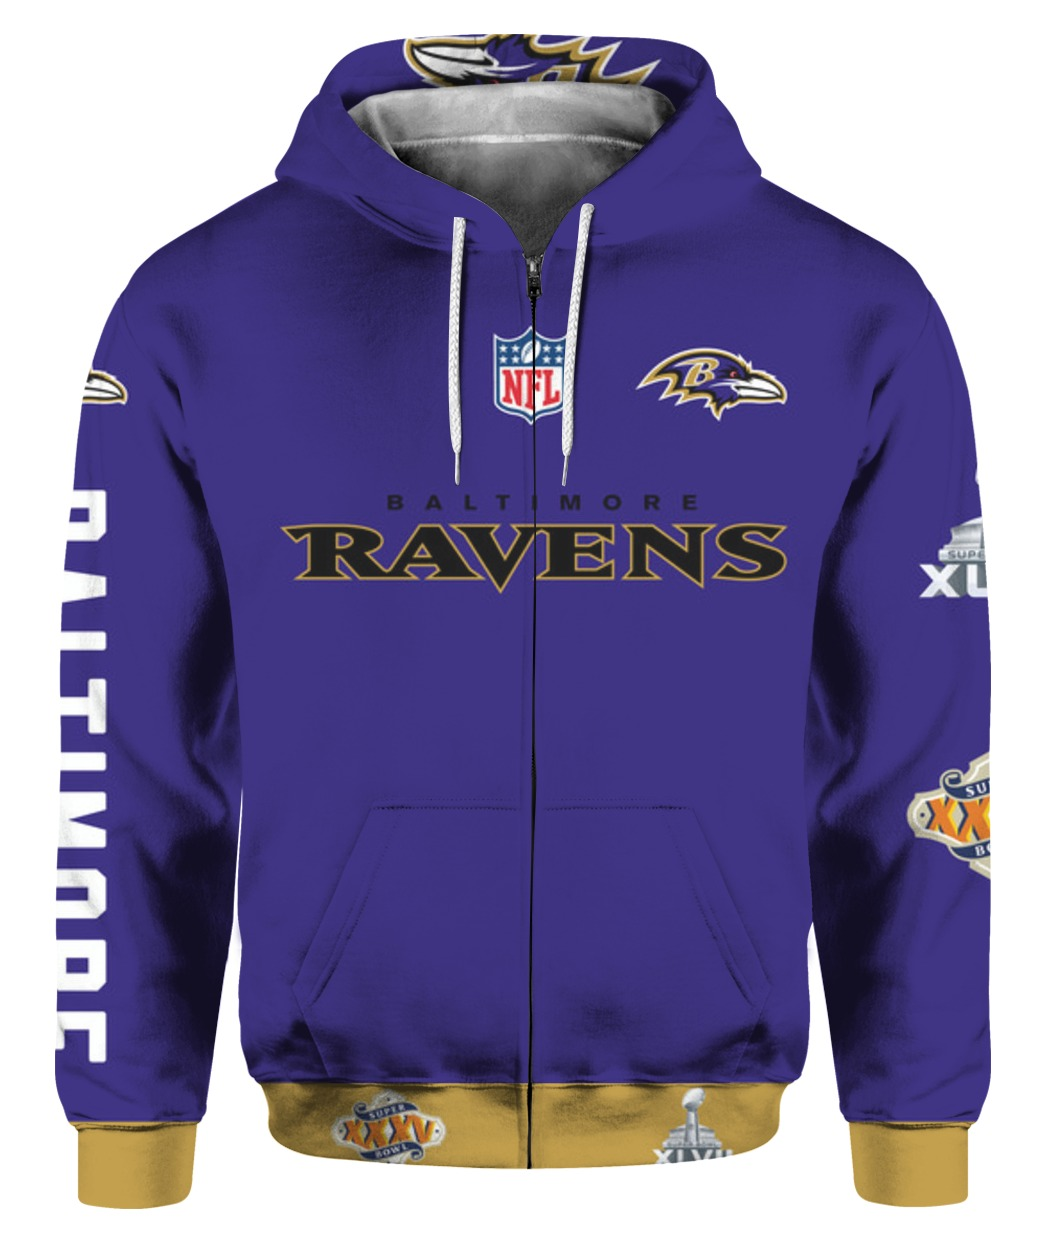 Stand for the flag kneel for the cross baltimore ravens all over print zip hoodie